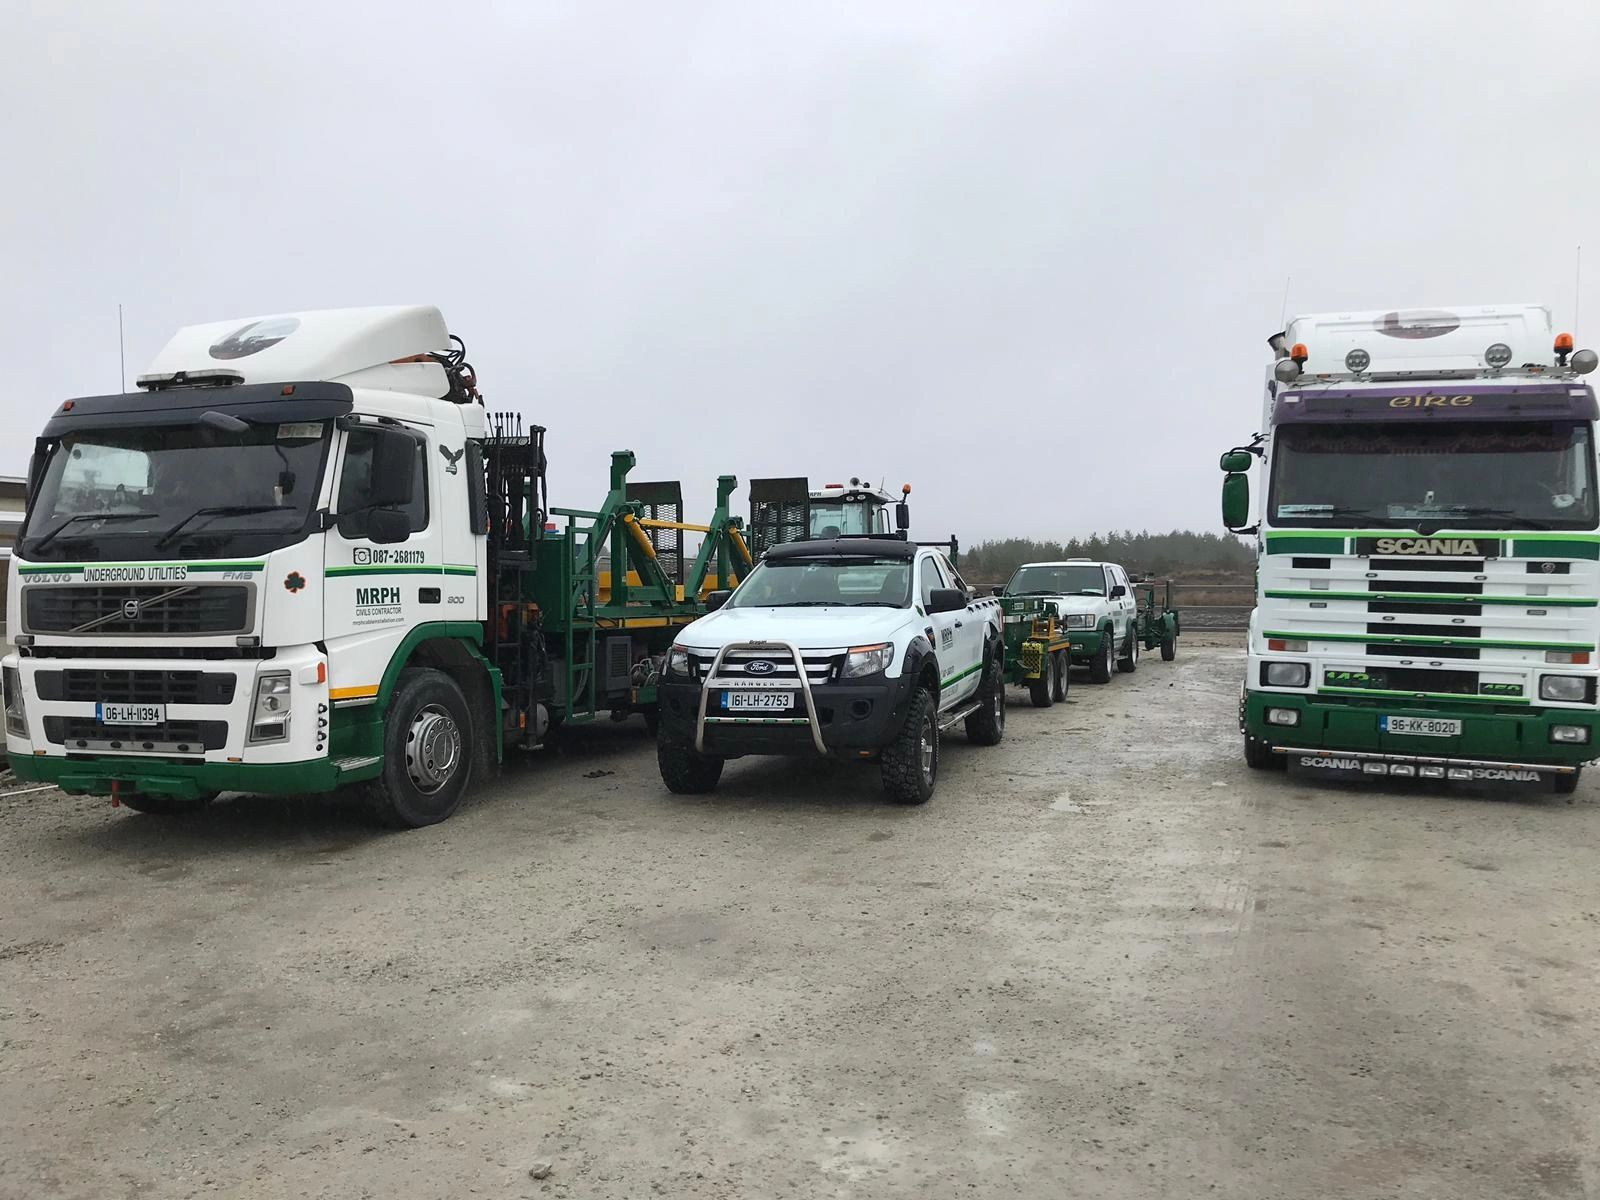 MRPH. Cable Installation. Ireland. Wind Farm. Volvo. JCB. Ford Ranger. Scania. Izuzu Trooper.